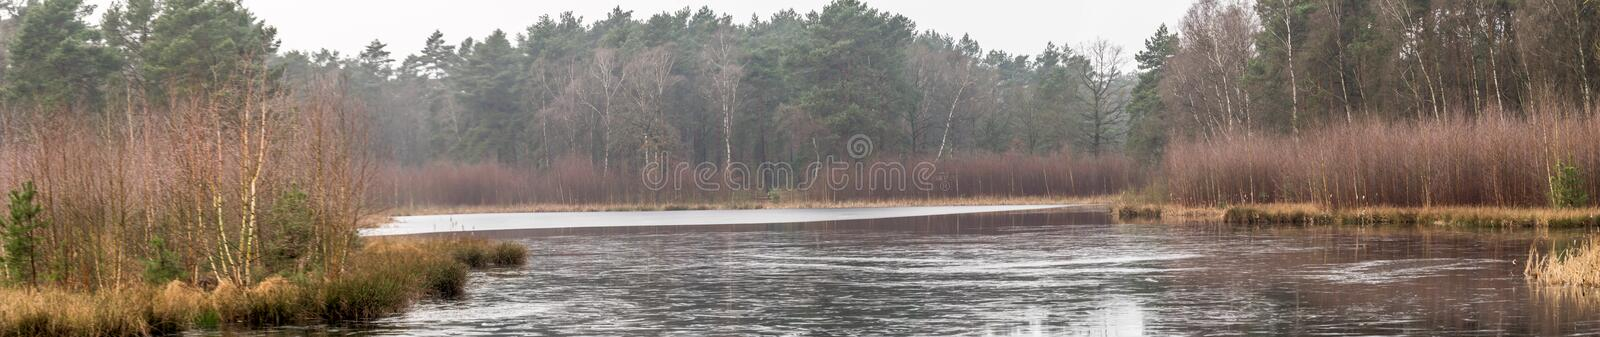 Panorama from the shore of a pond covered with ice, with trees and bushes in the background, a lot of space and width as header fo stock photography